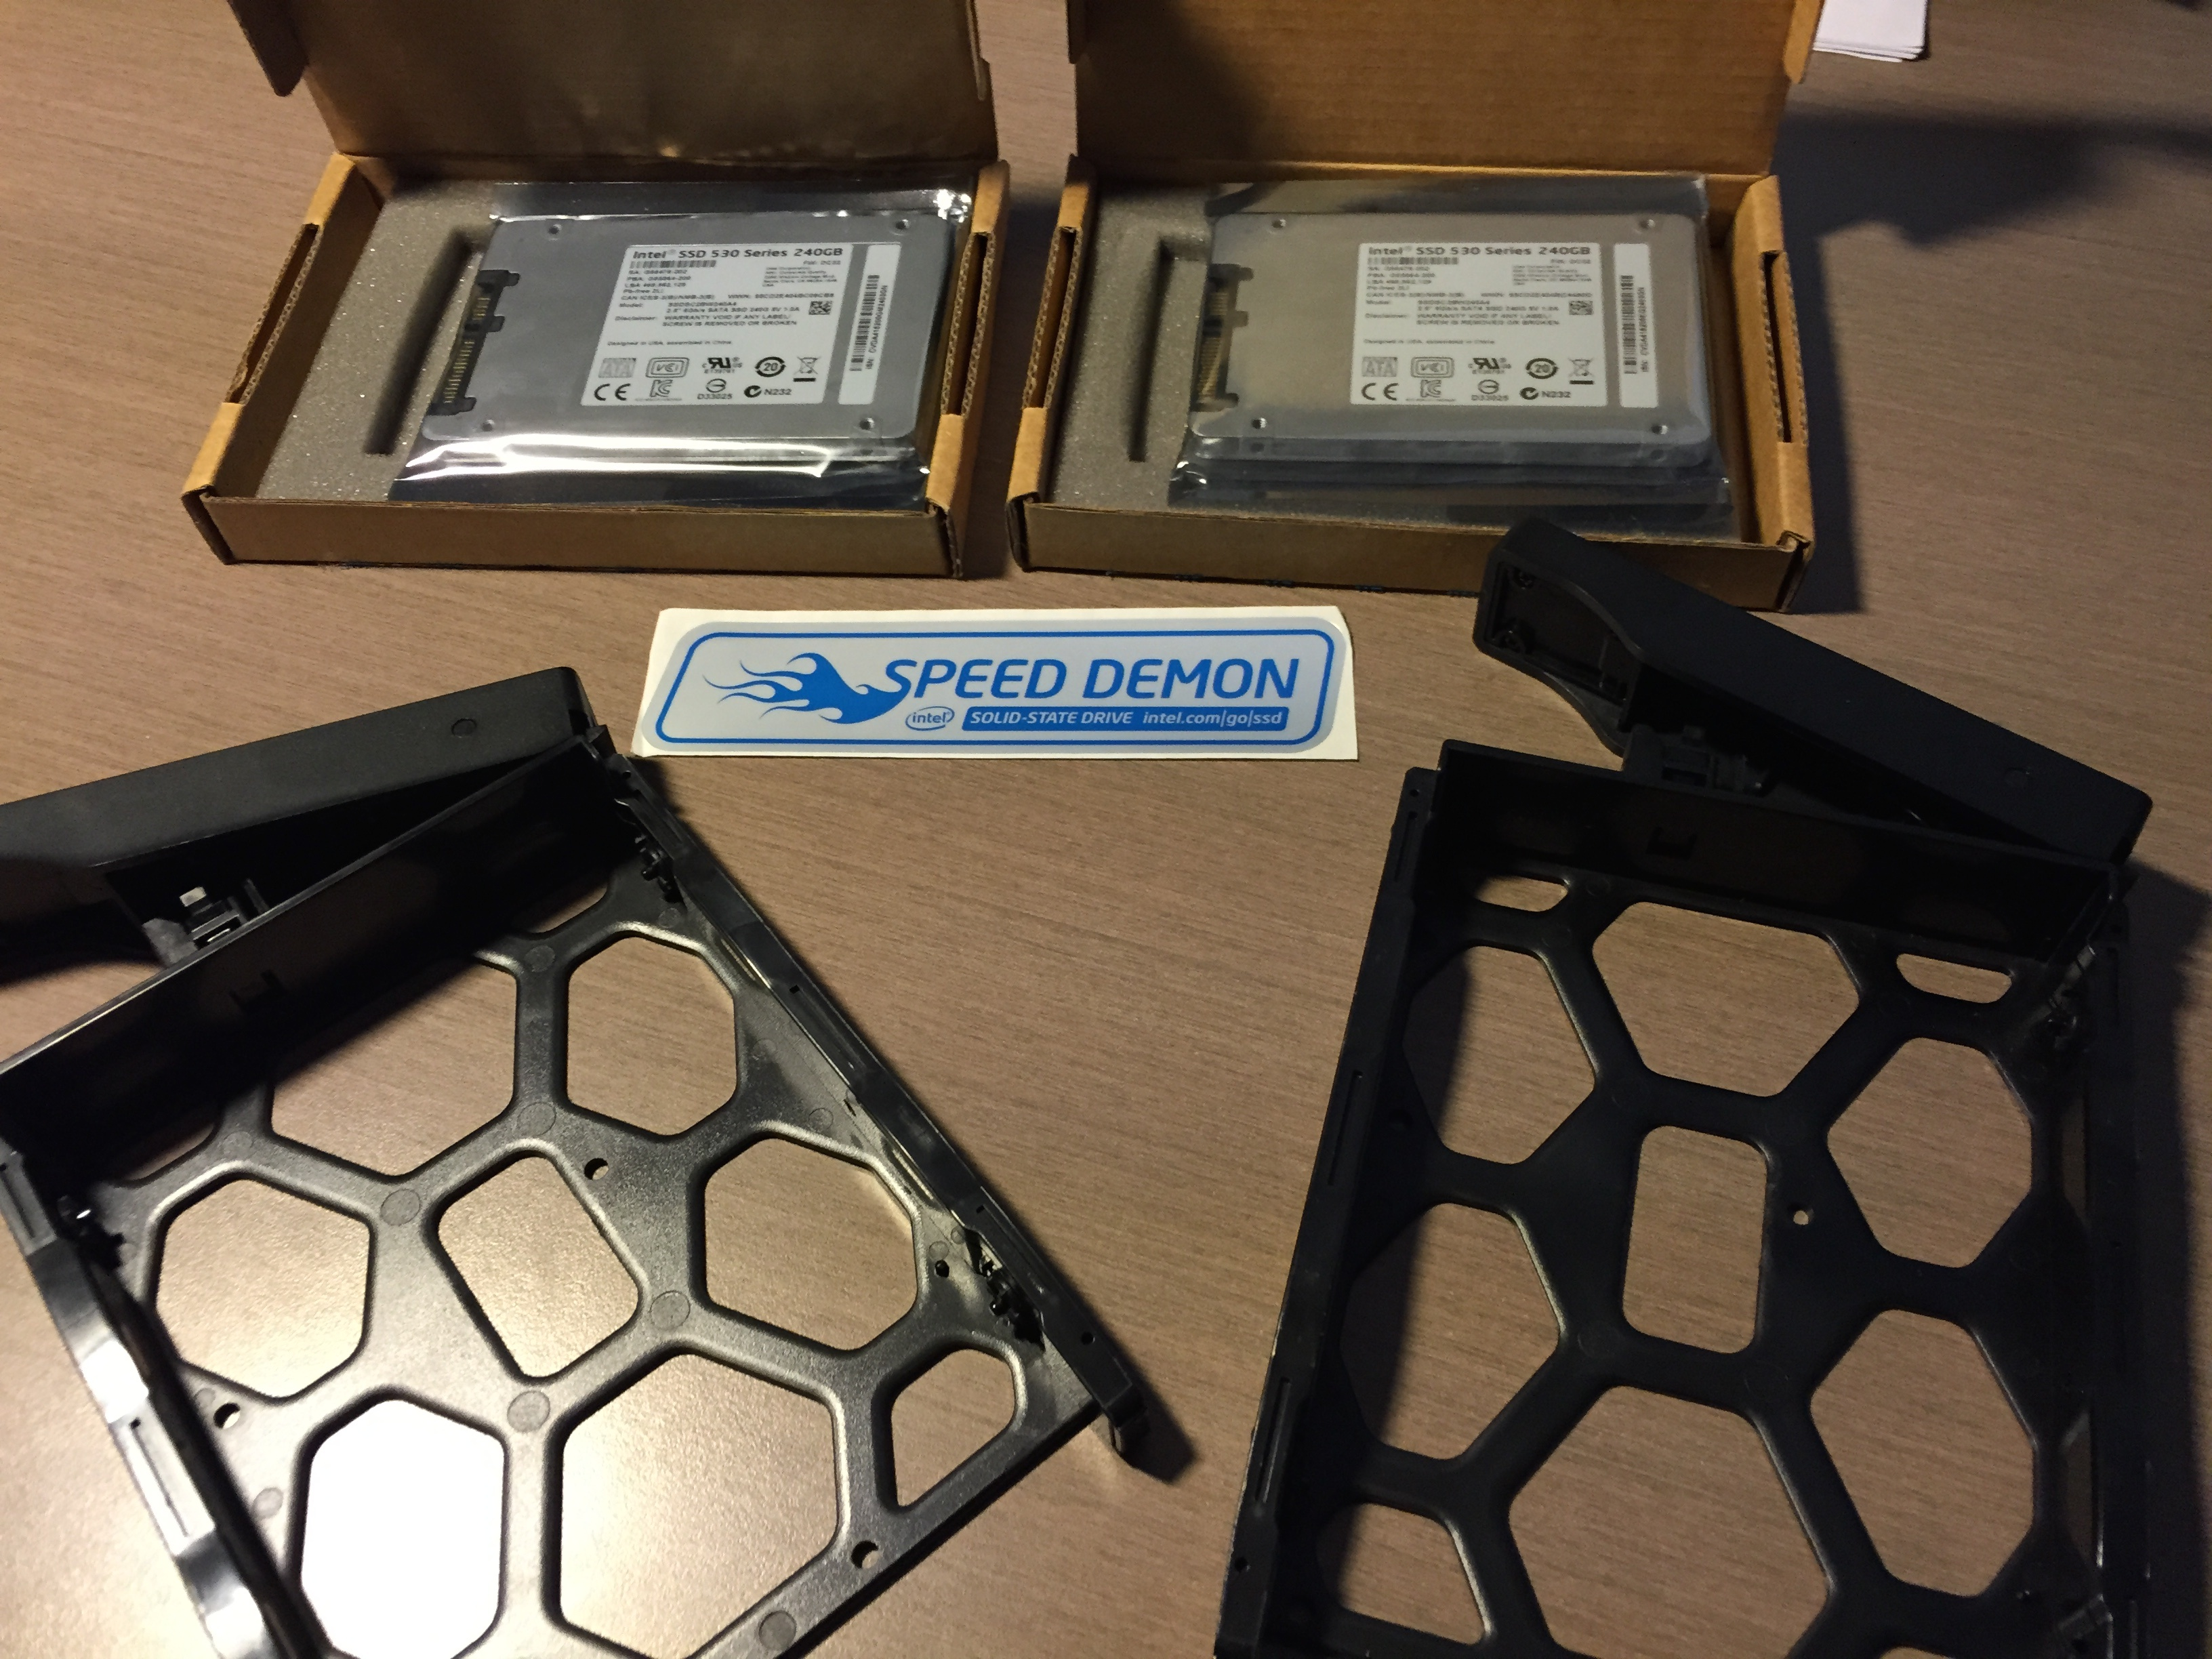 Adding an SSD cache to Synology DS-1813+ – Notes from MWhite